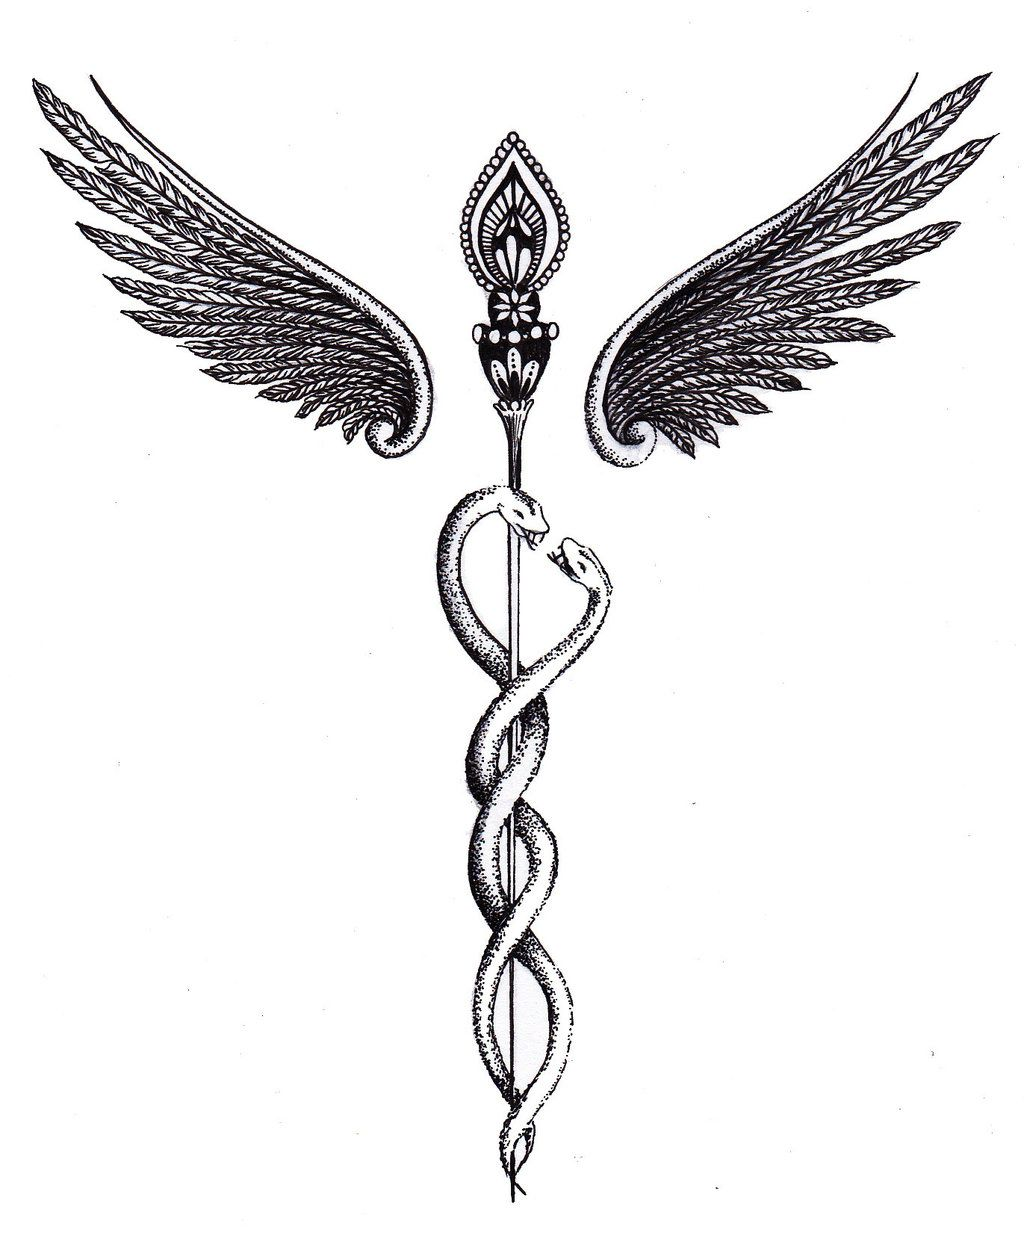 Caduceus tattoo google search pinteres caduceus tattoo google search more buycottarizona Gallery